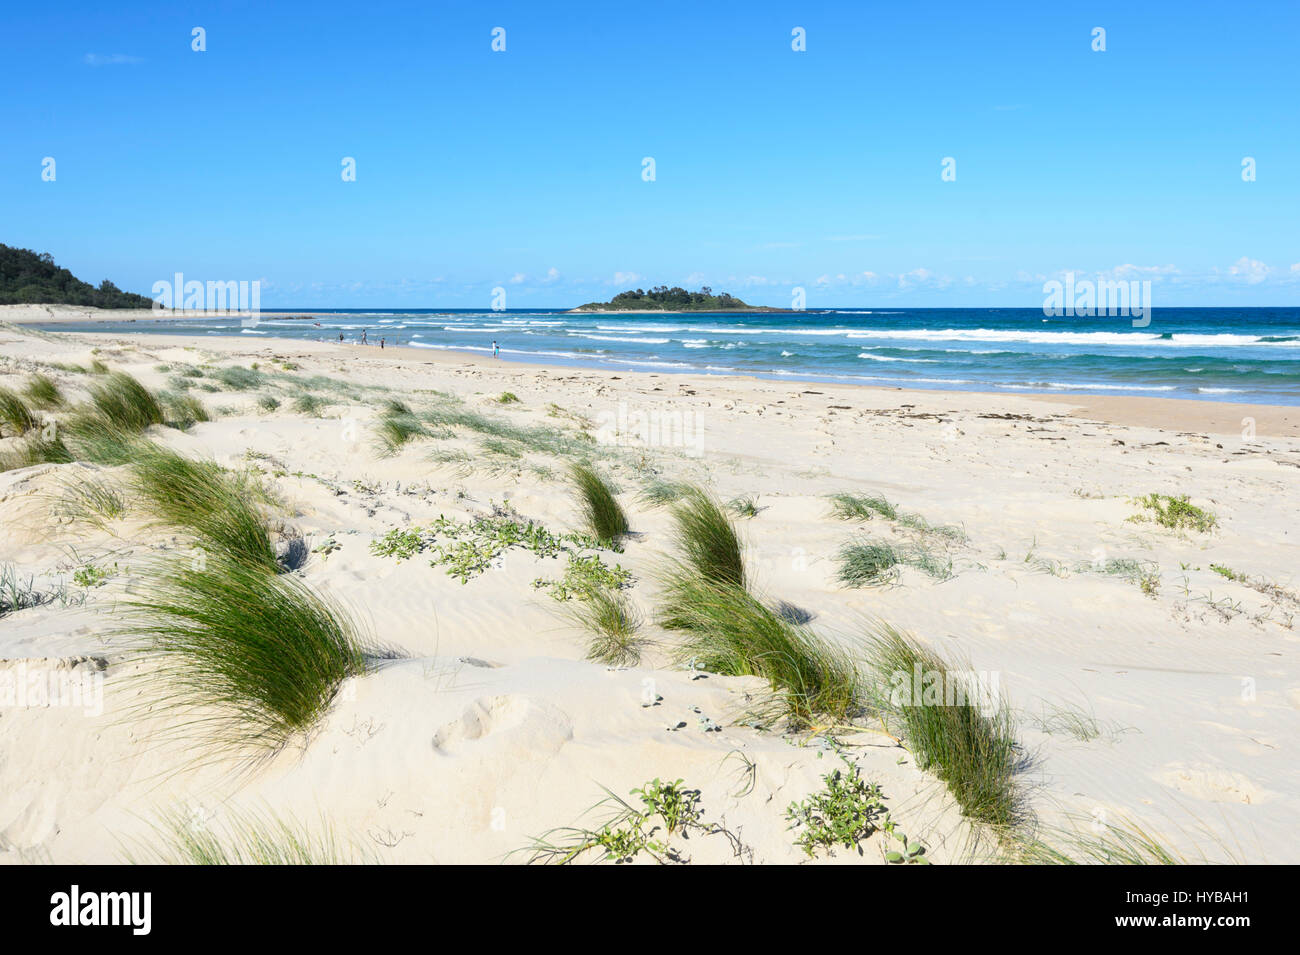 People strolling on  Conjola Beach, Shoalhaven, South Coast, New South Wales, NSW, Australia Stock Photo